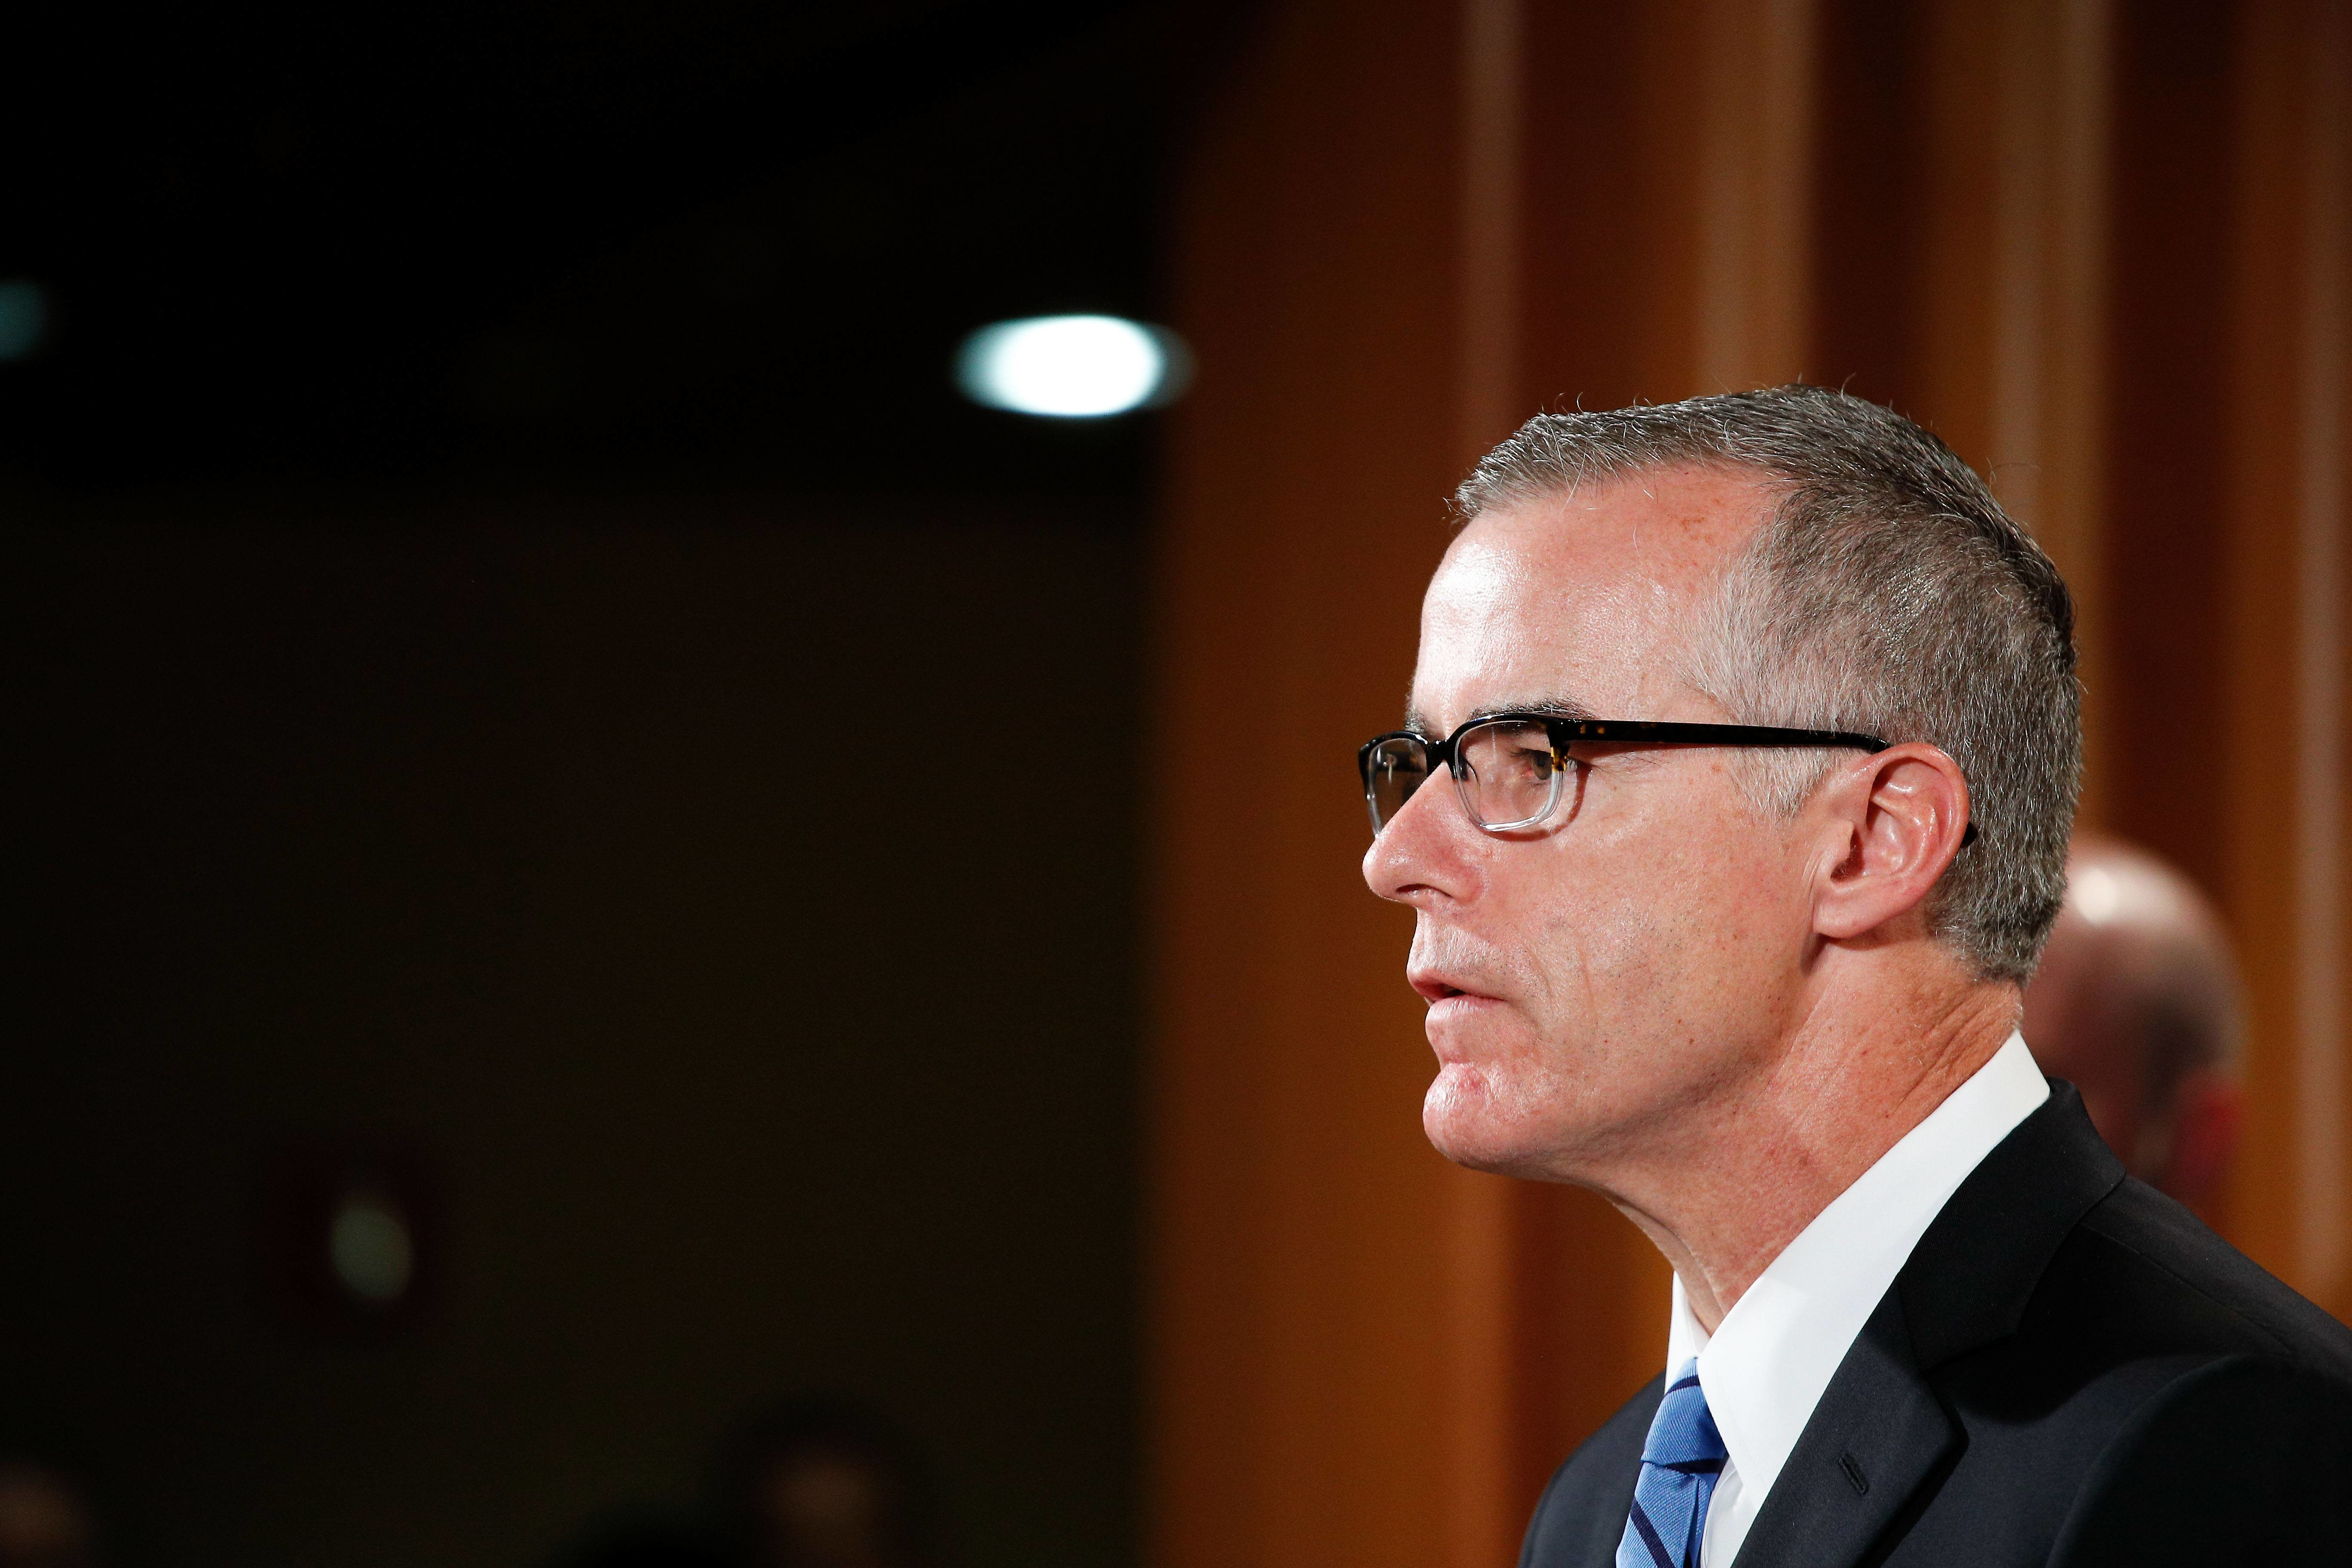 No sooner had the congressional letter landed in Sessions office than it was revealed late Thursday that Horowitz has already referred McCabe to the US